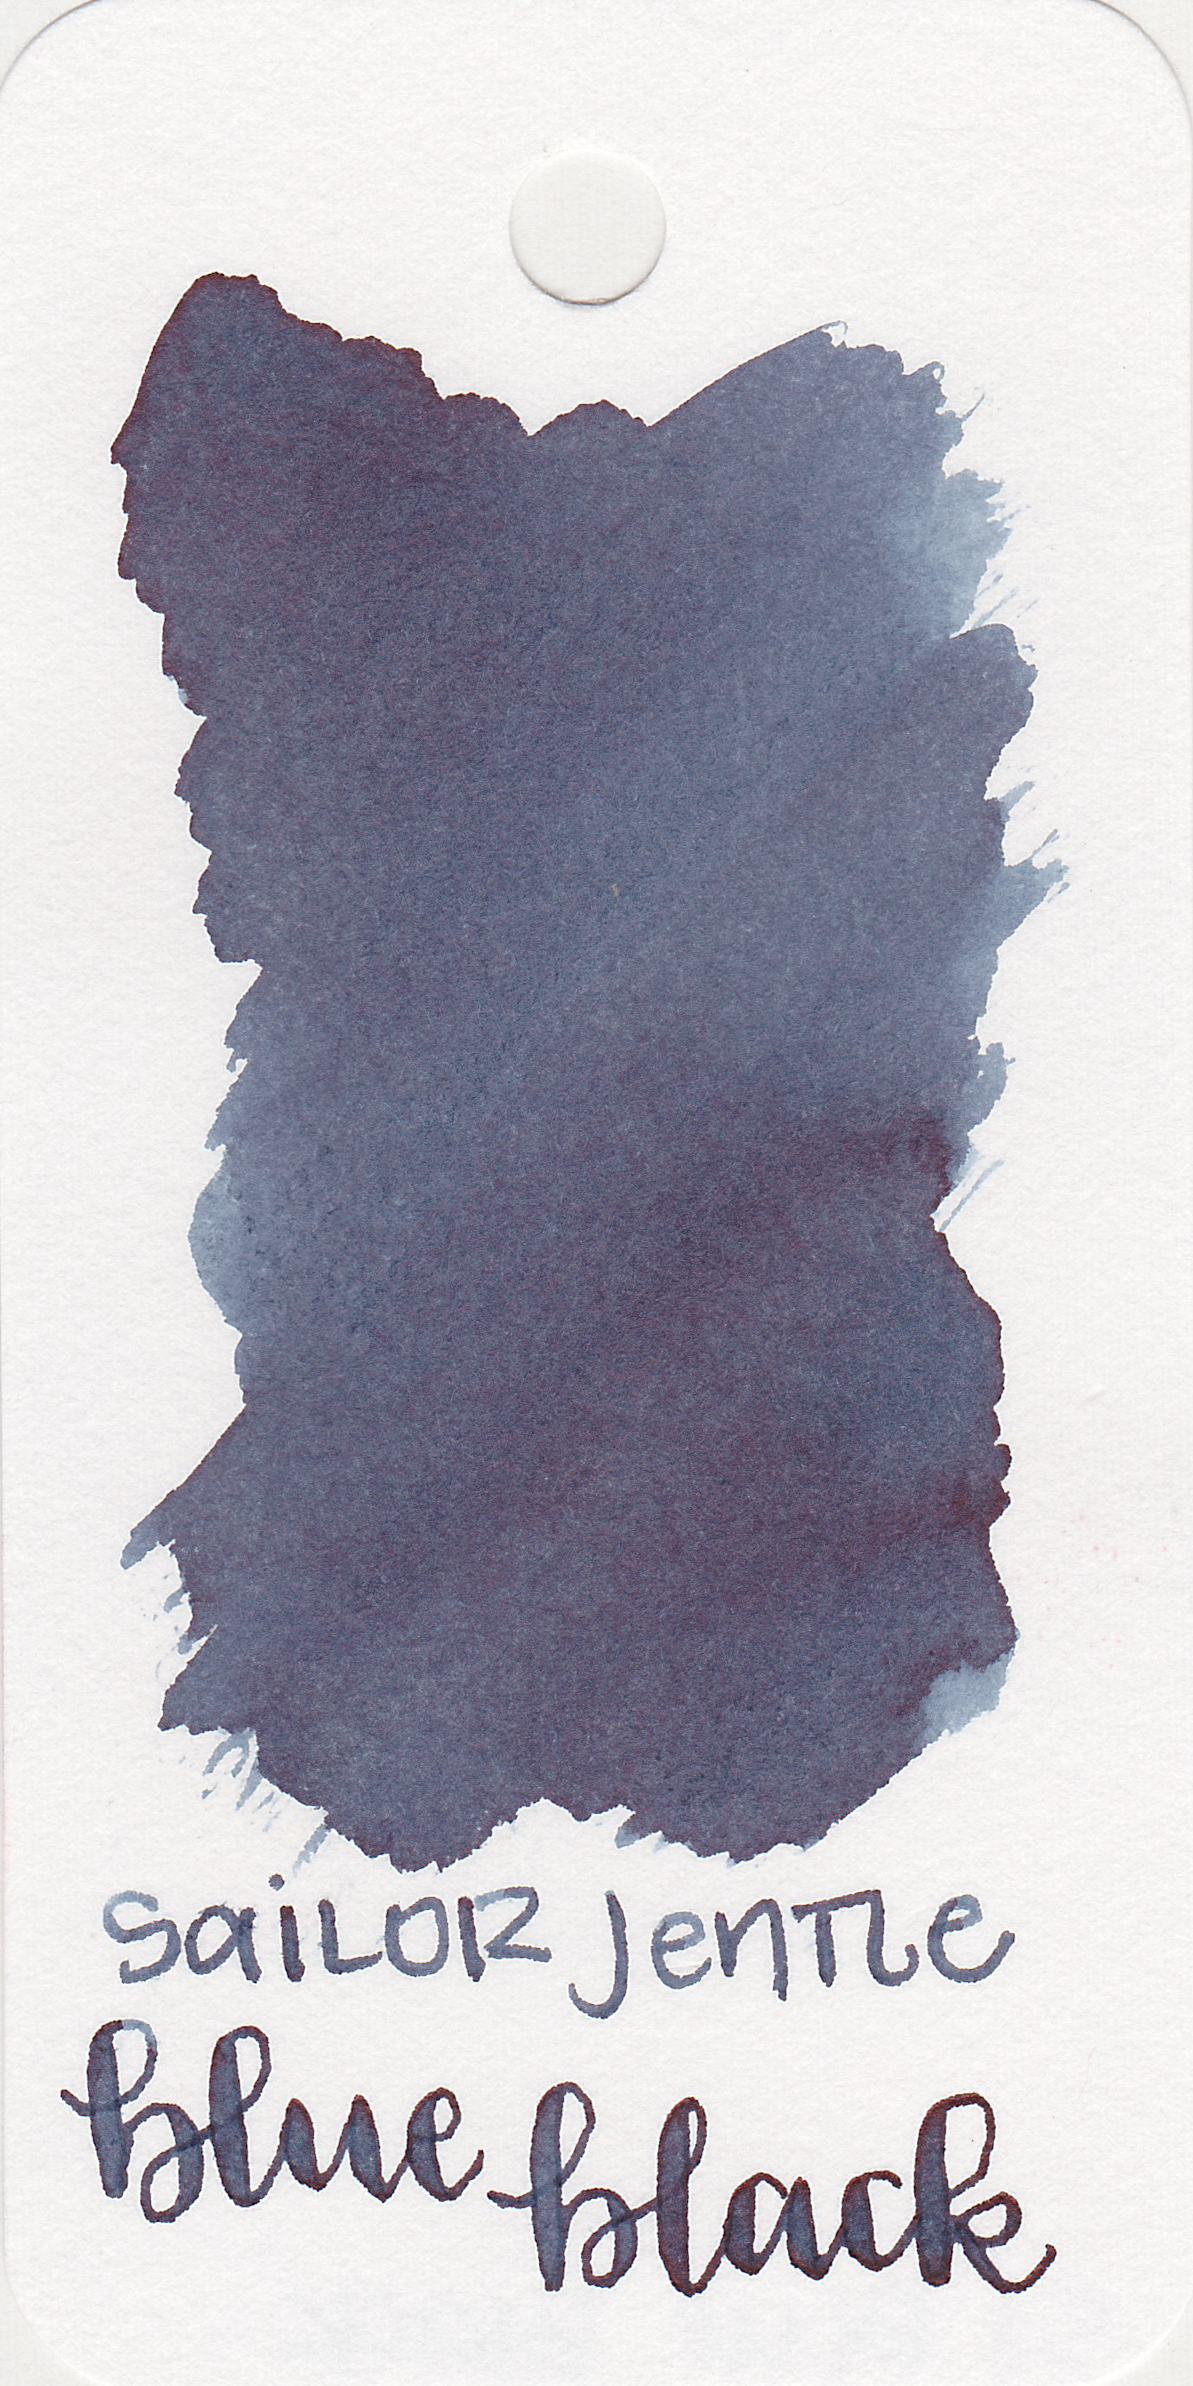 The color: - Blue Black is a lovely blue black, with just a touch of grey in it.